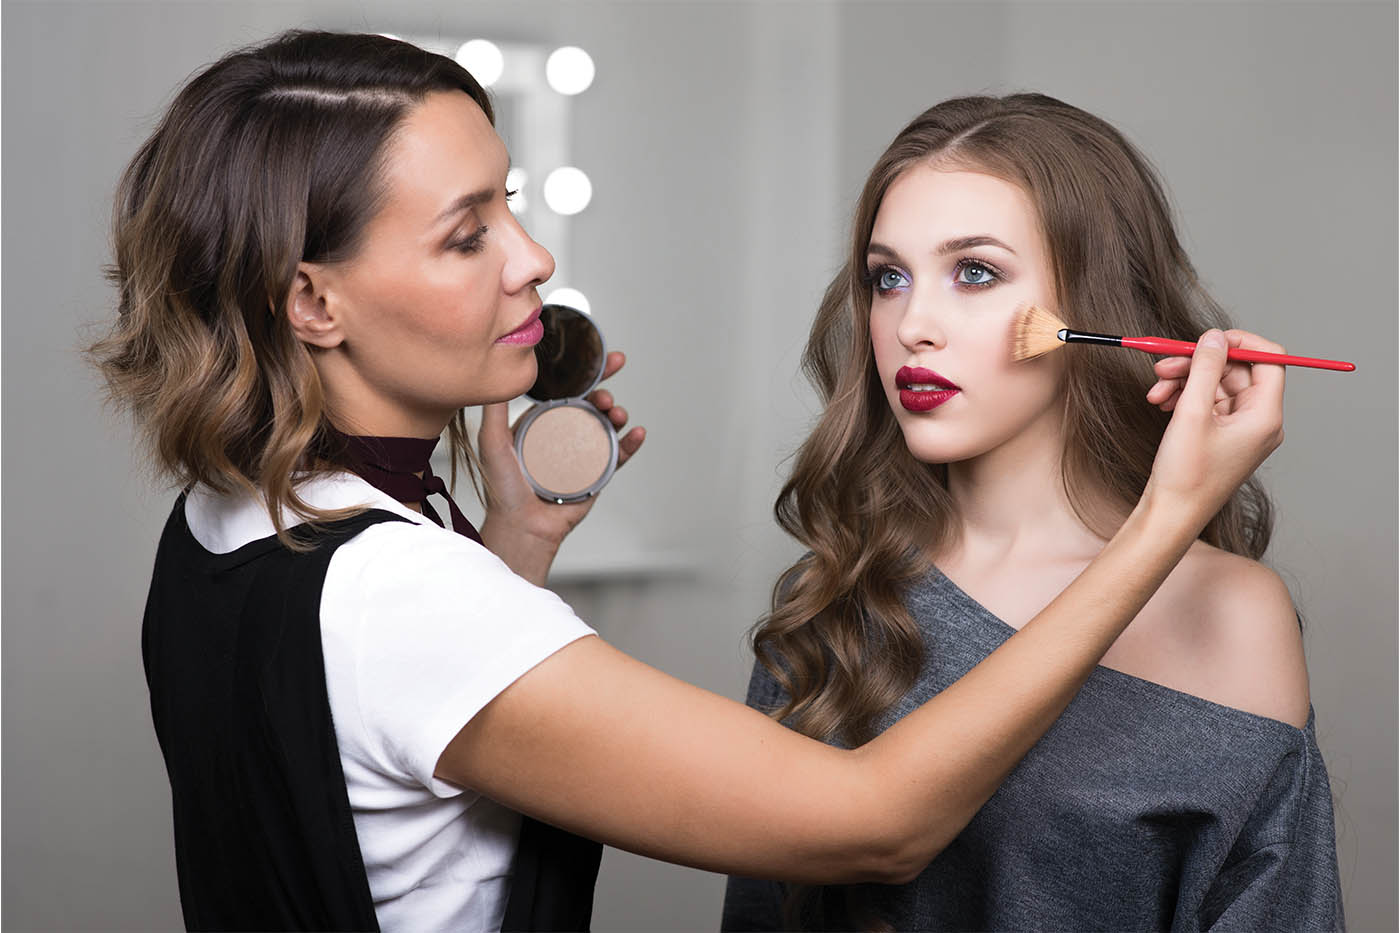 How can Make-up artists perfect their skills?